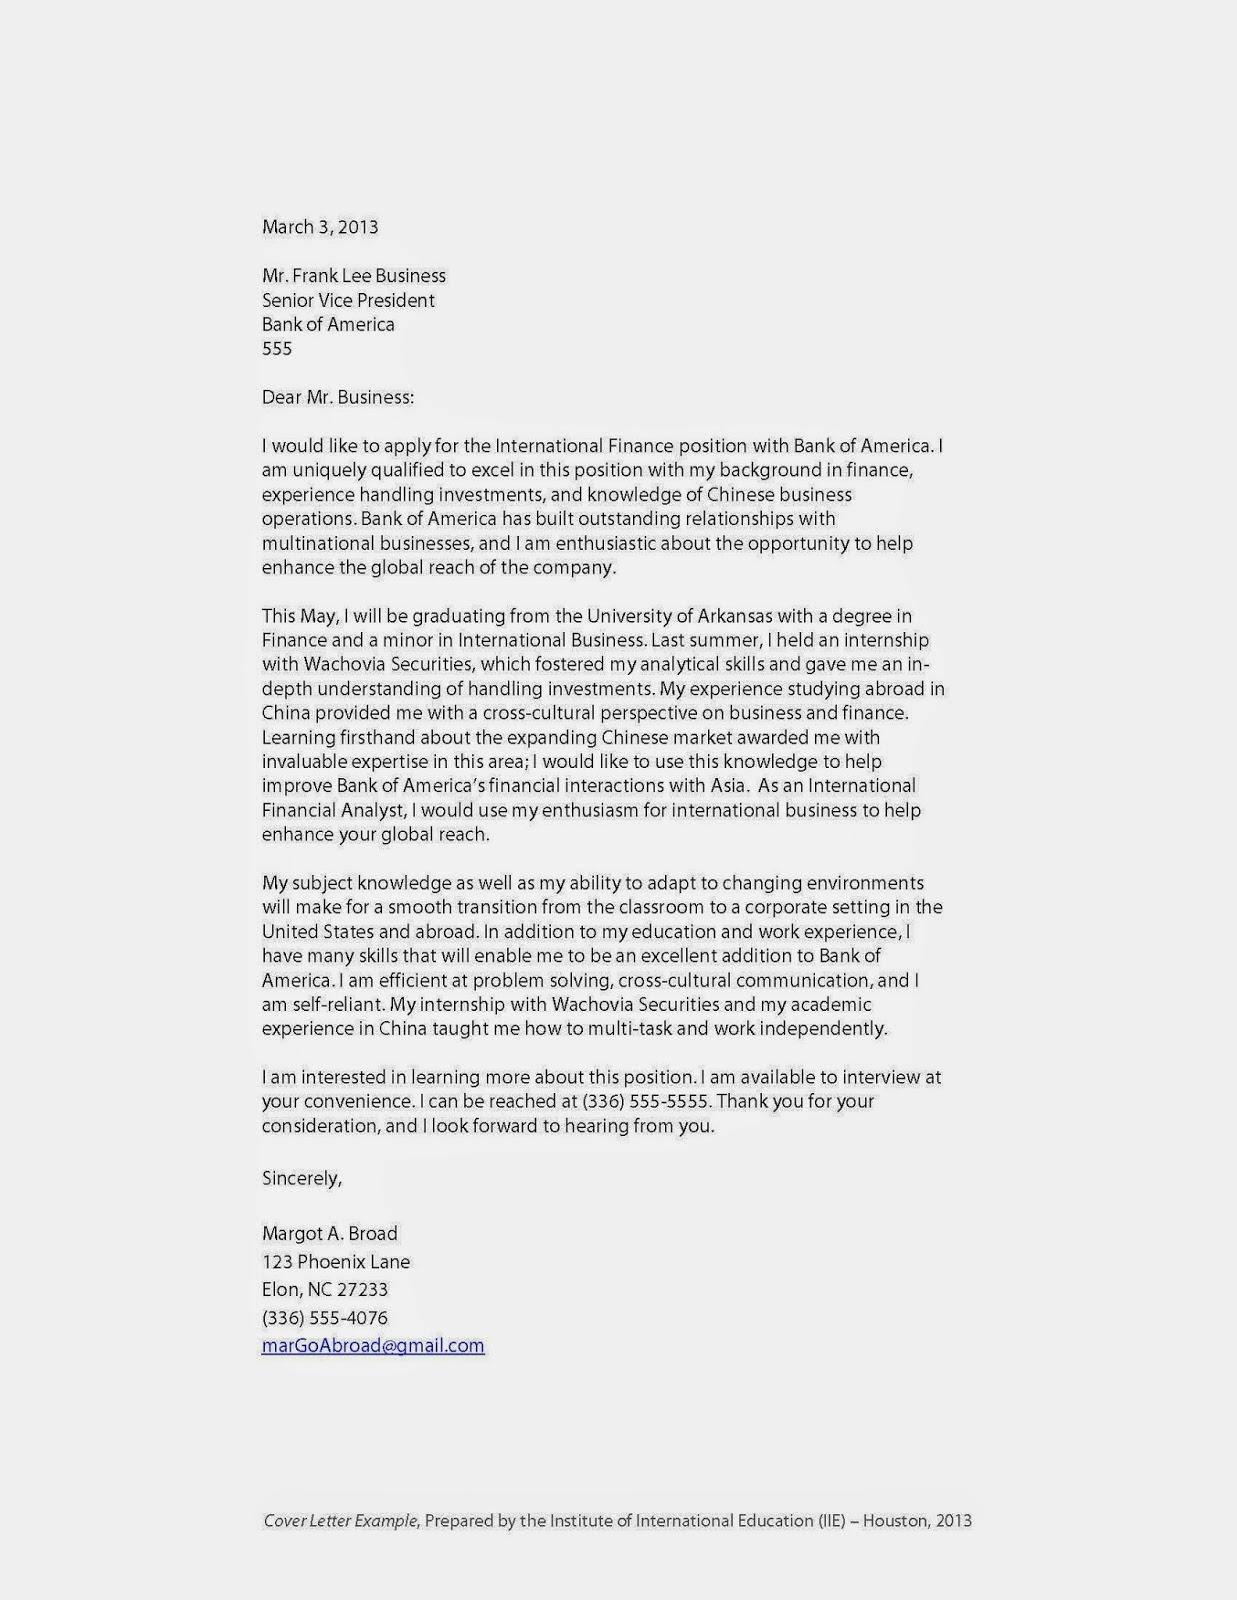 sample cover letter for working abroad templates and examples sample college essay examples study abroad cover letter examples